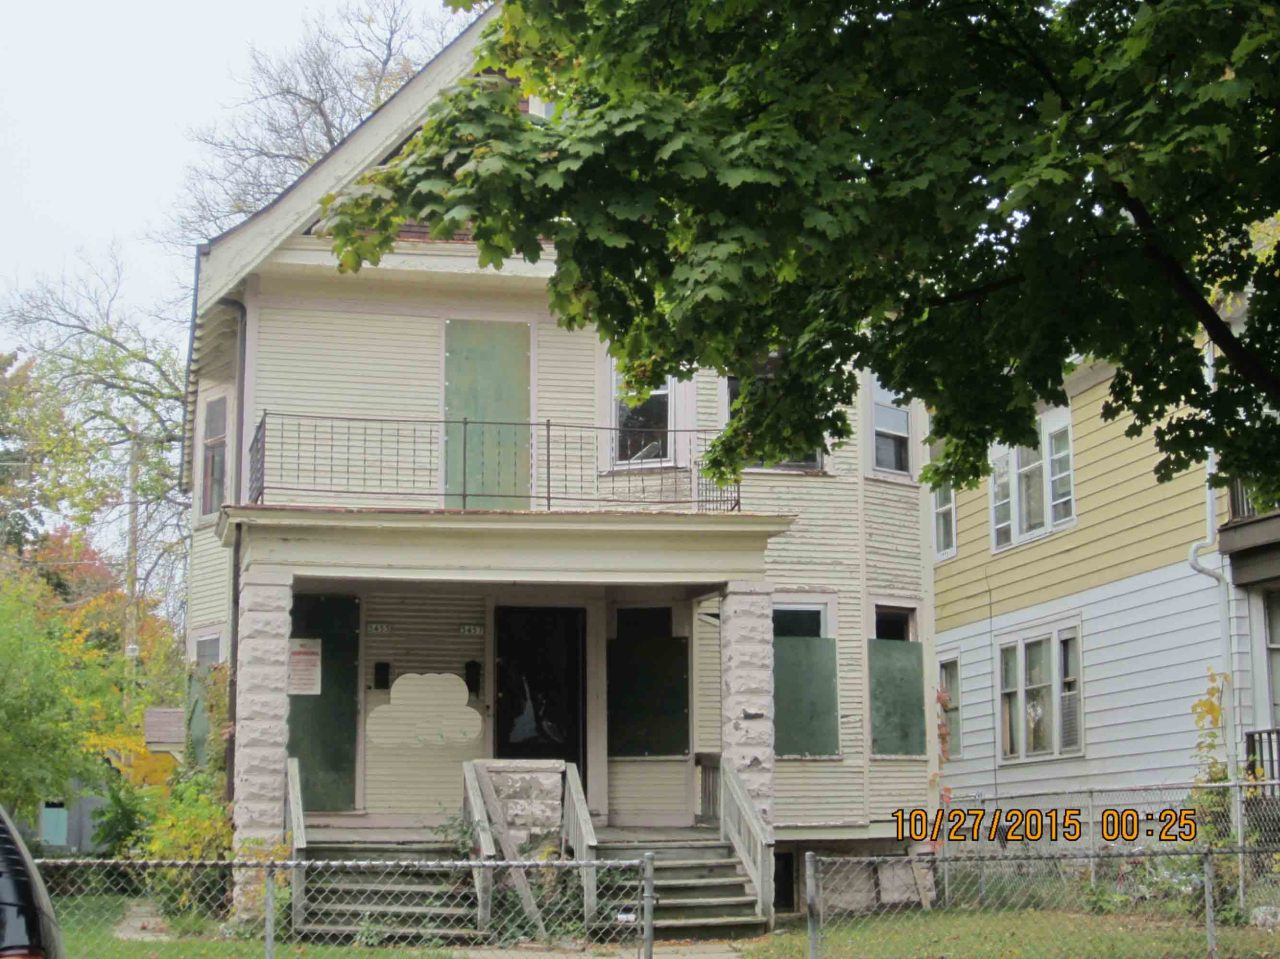 3455 14th St, Milwaukee, Wisconsin 53206, 2 Bedrooms Bedrooms, 5 Rooms Rooms,1 BathroomBathrooms,Two-Family,For Sale,14th St,1,1449319